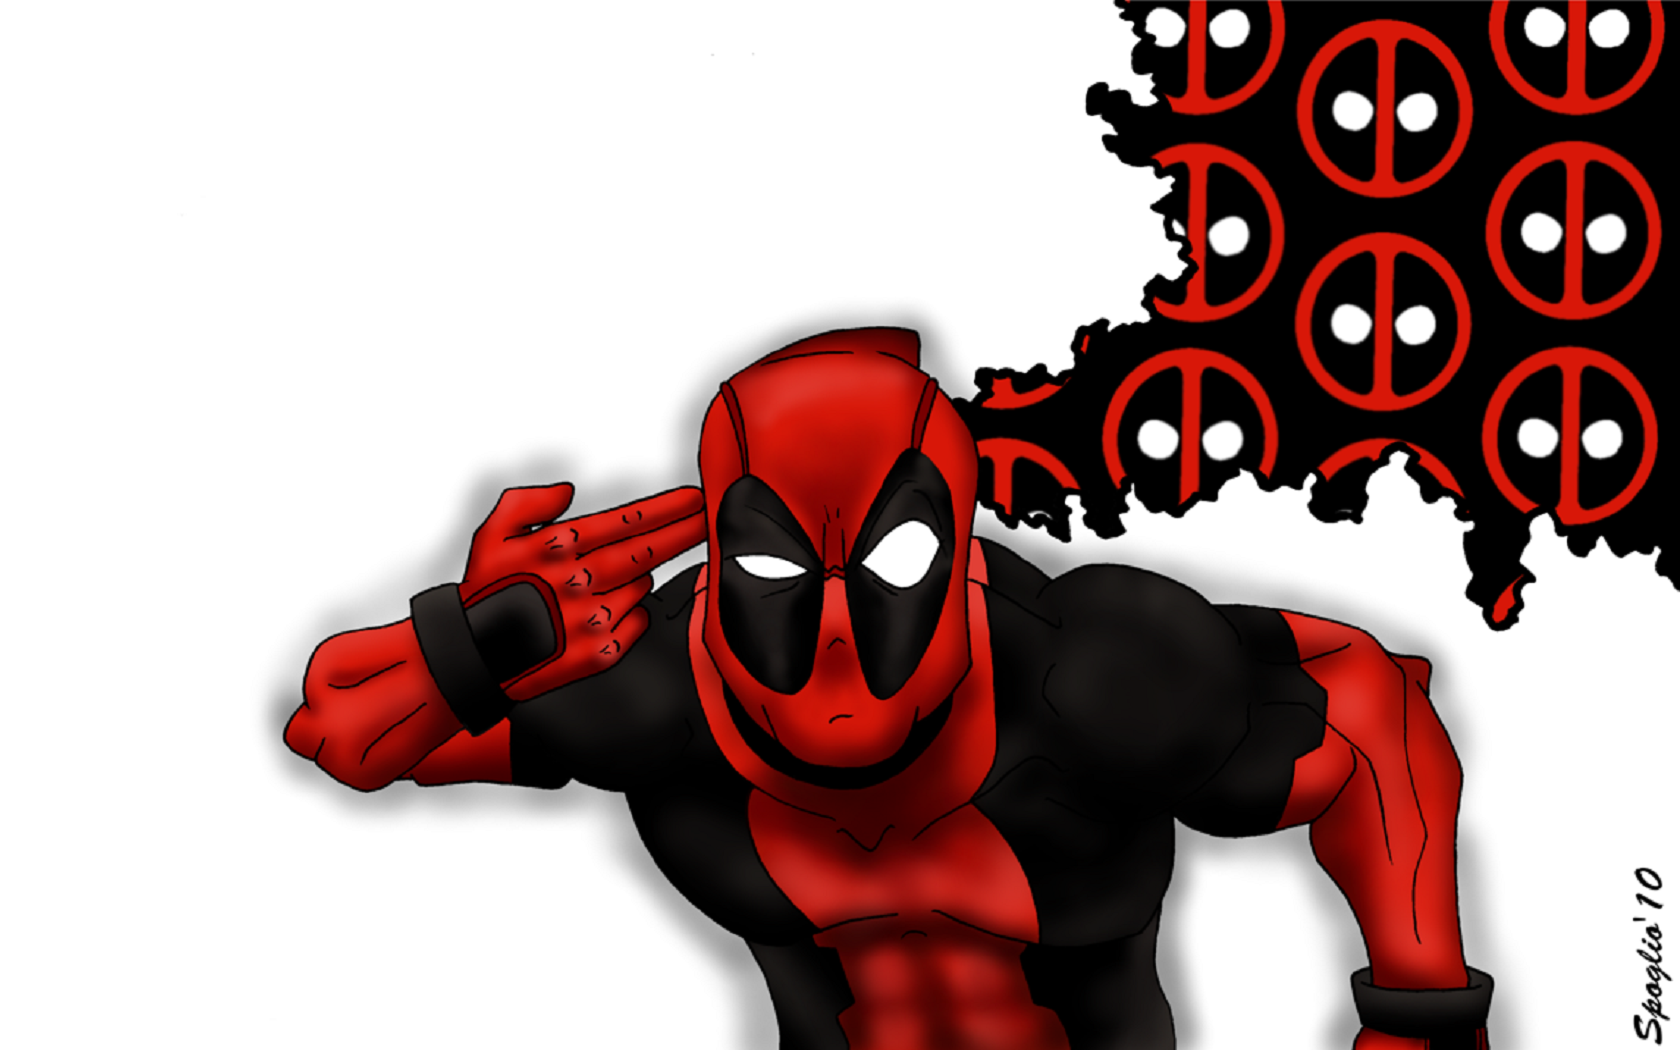 Deadpool clipart deadpool 2. Wallpaper by spoglio wade